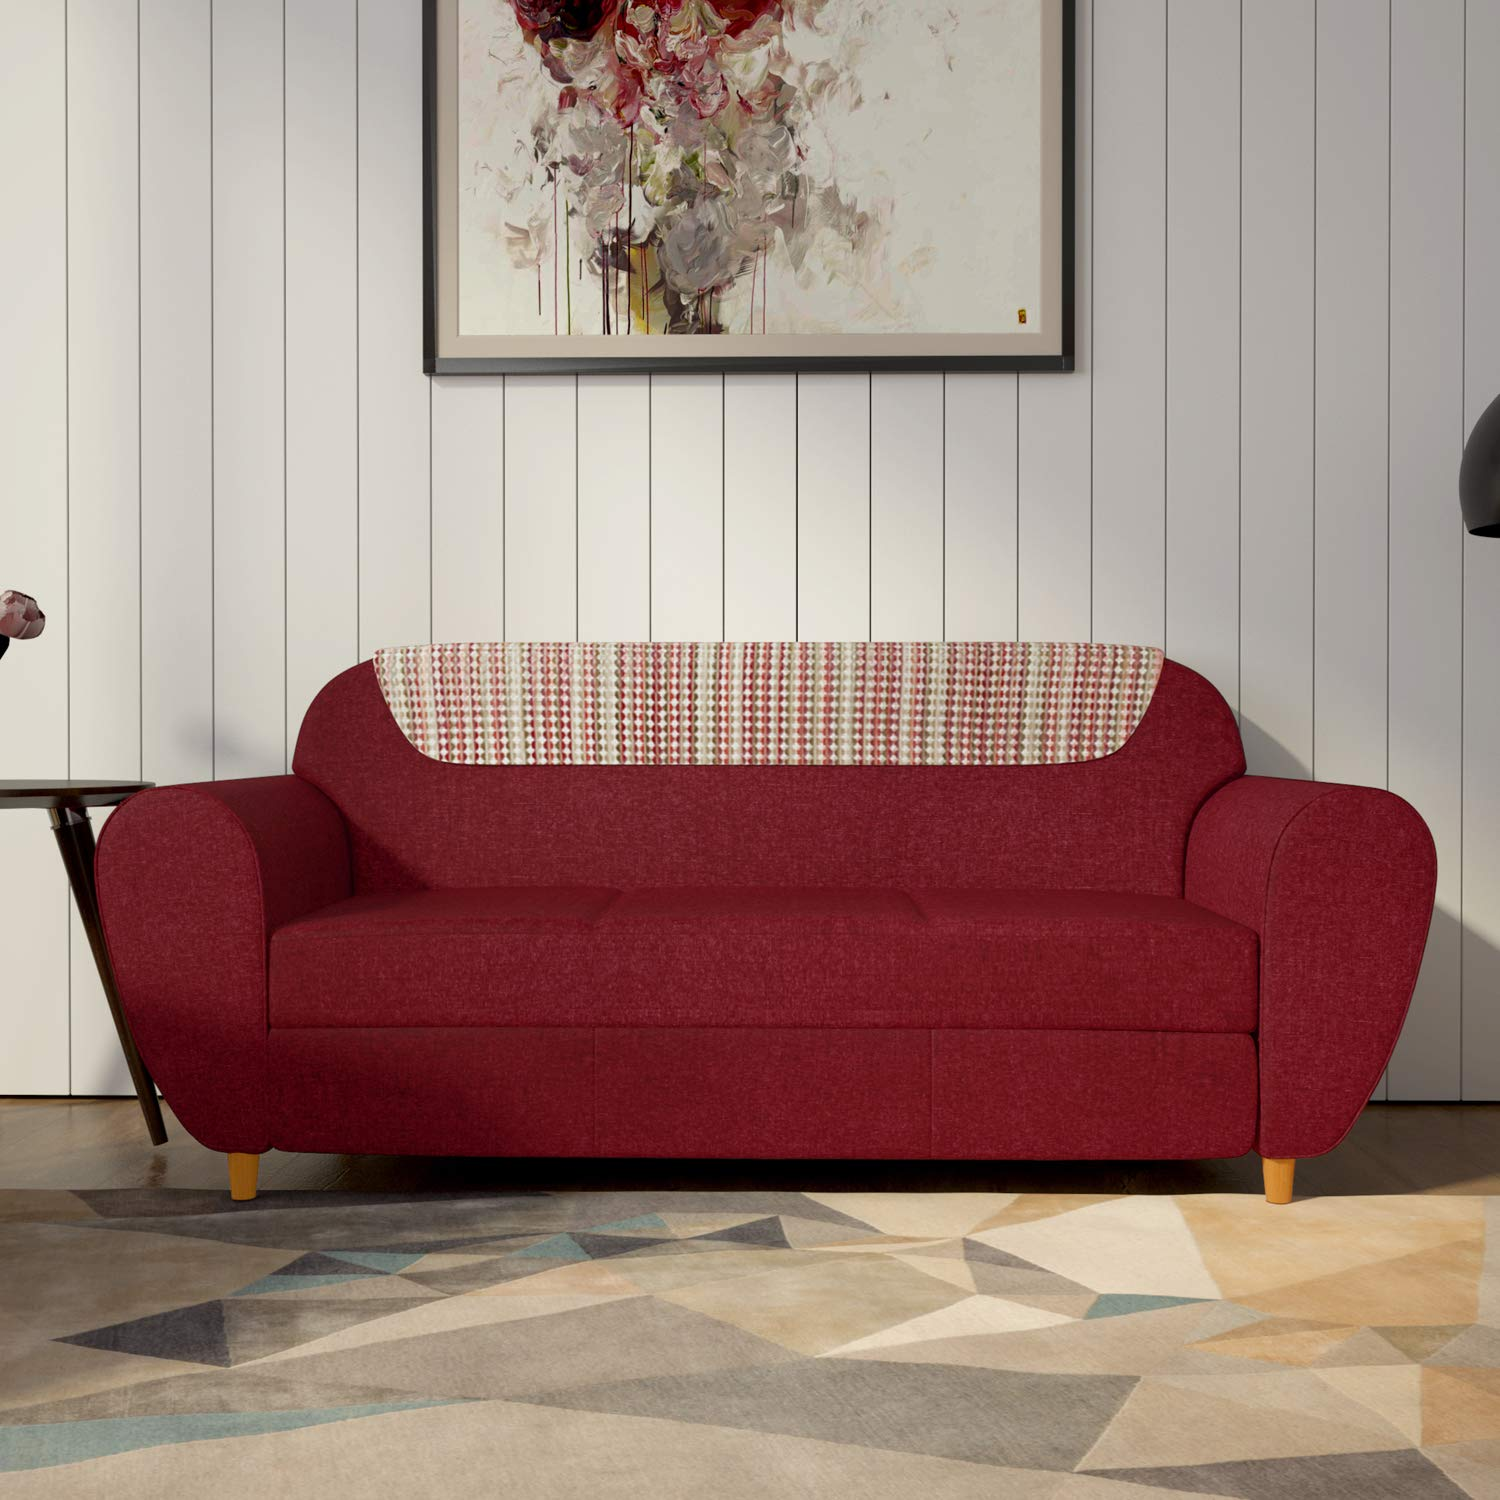 Godrej Interio Petal Three Seater Sectional Sofa Indian Red Amazon In Electronics Buy sofas & recliners online or at godrej interio at best prices. godrej interio petal three seater